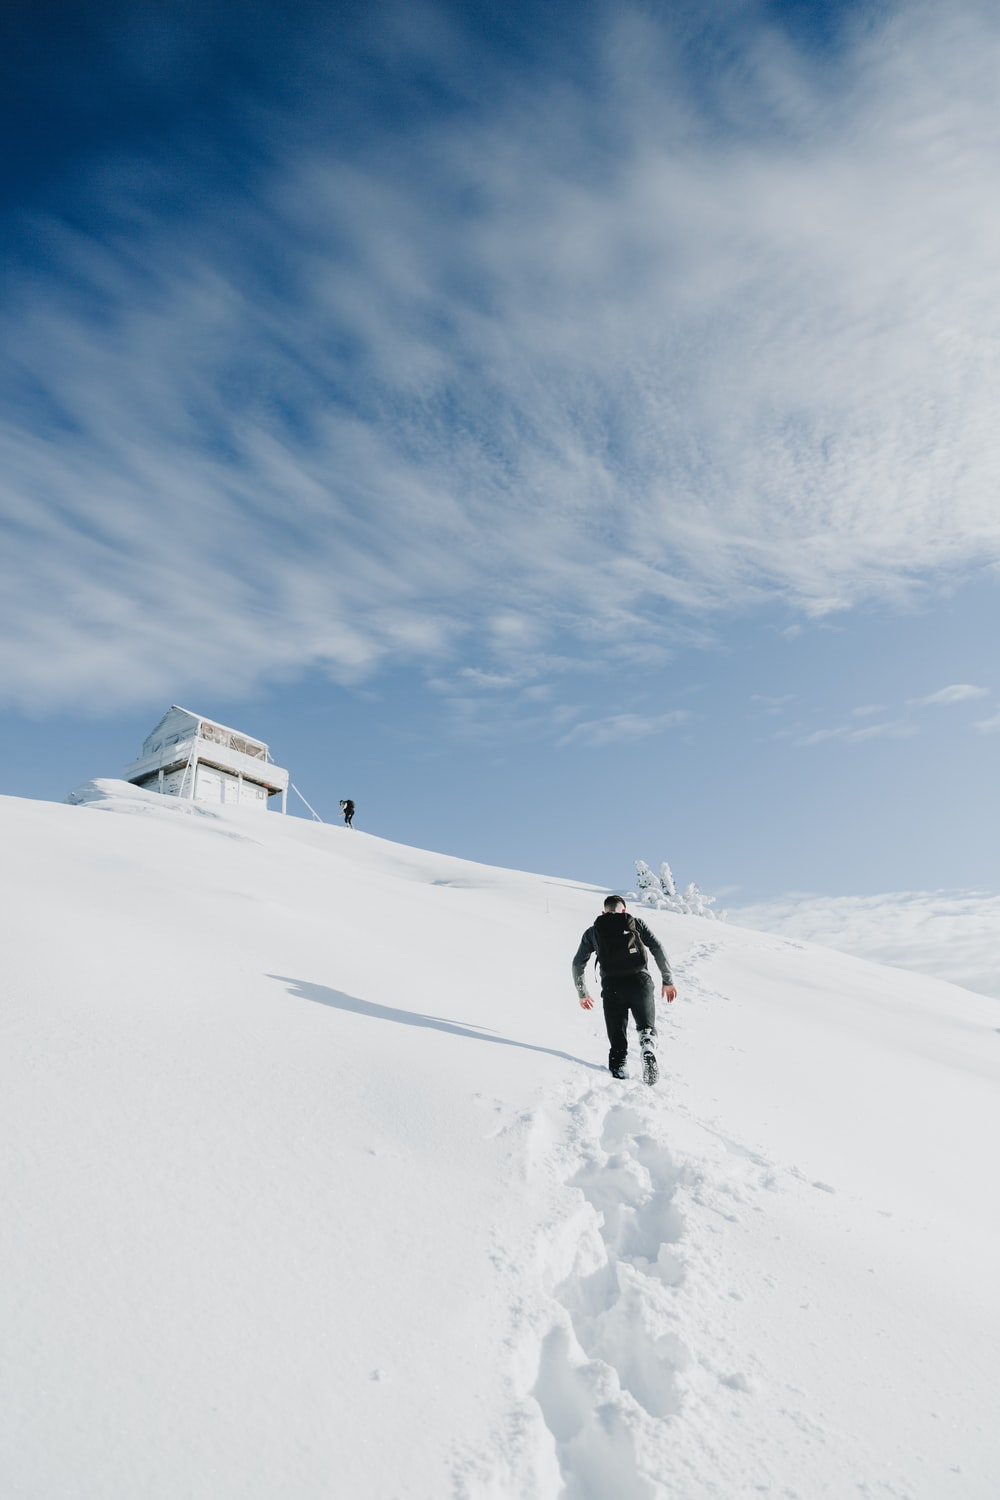 person in black jacket walking on snow covered ground under blue sky during daytime